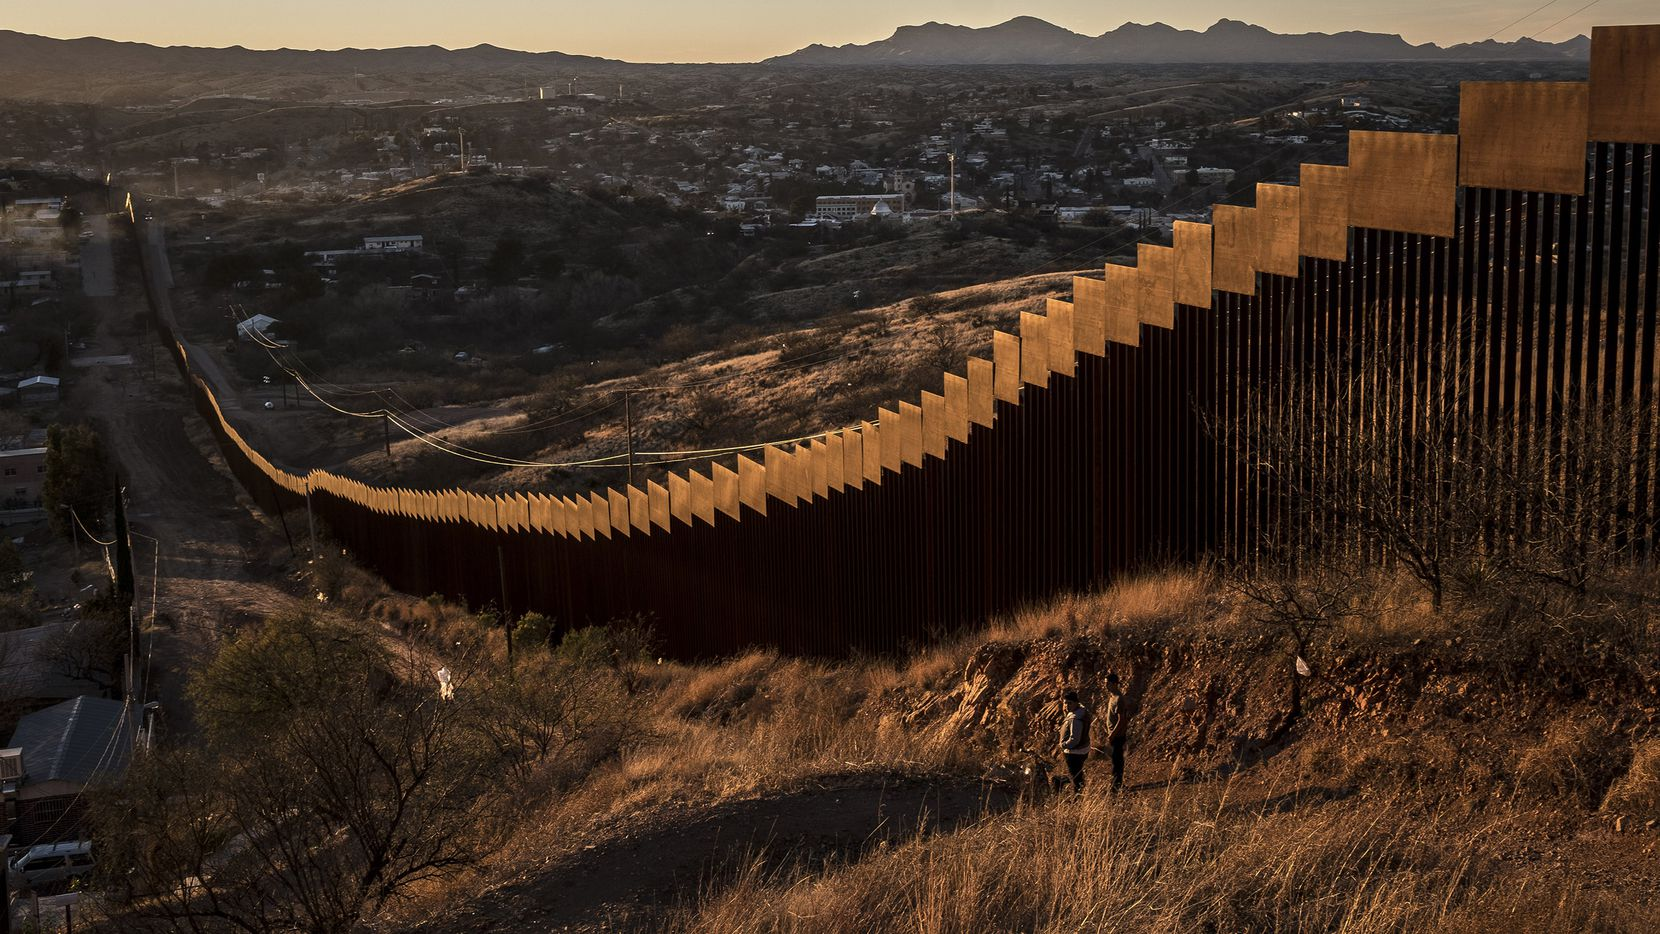 The border wall, here made of tall steel beams in rows, in Nogales. Mexico, Jan. 30, 2017. The current version is new enough that teenagers who grew up here still remember its construction. (Bryan Denton/The New York Times)